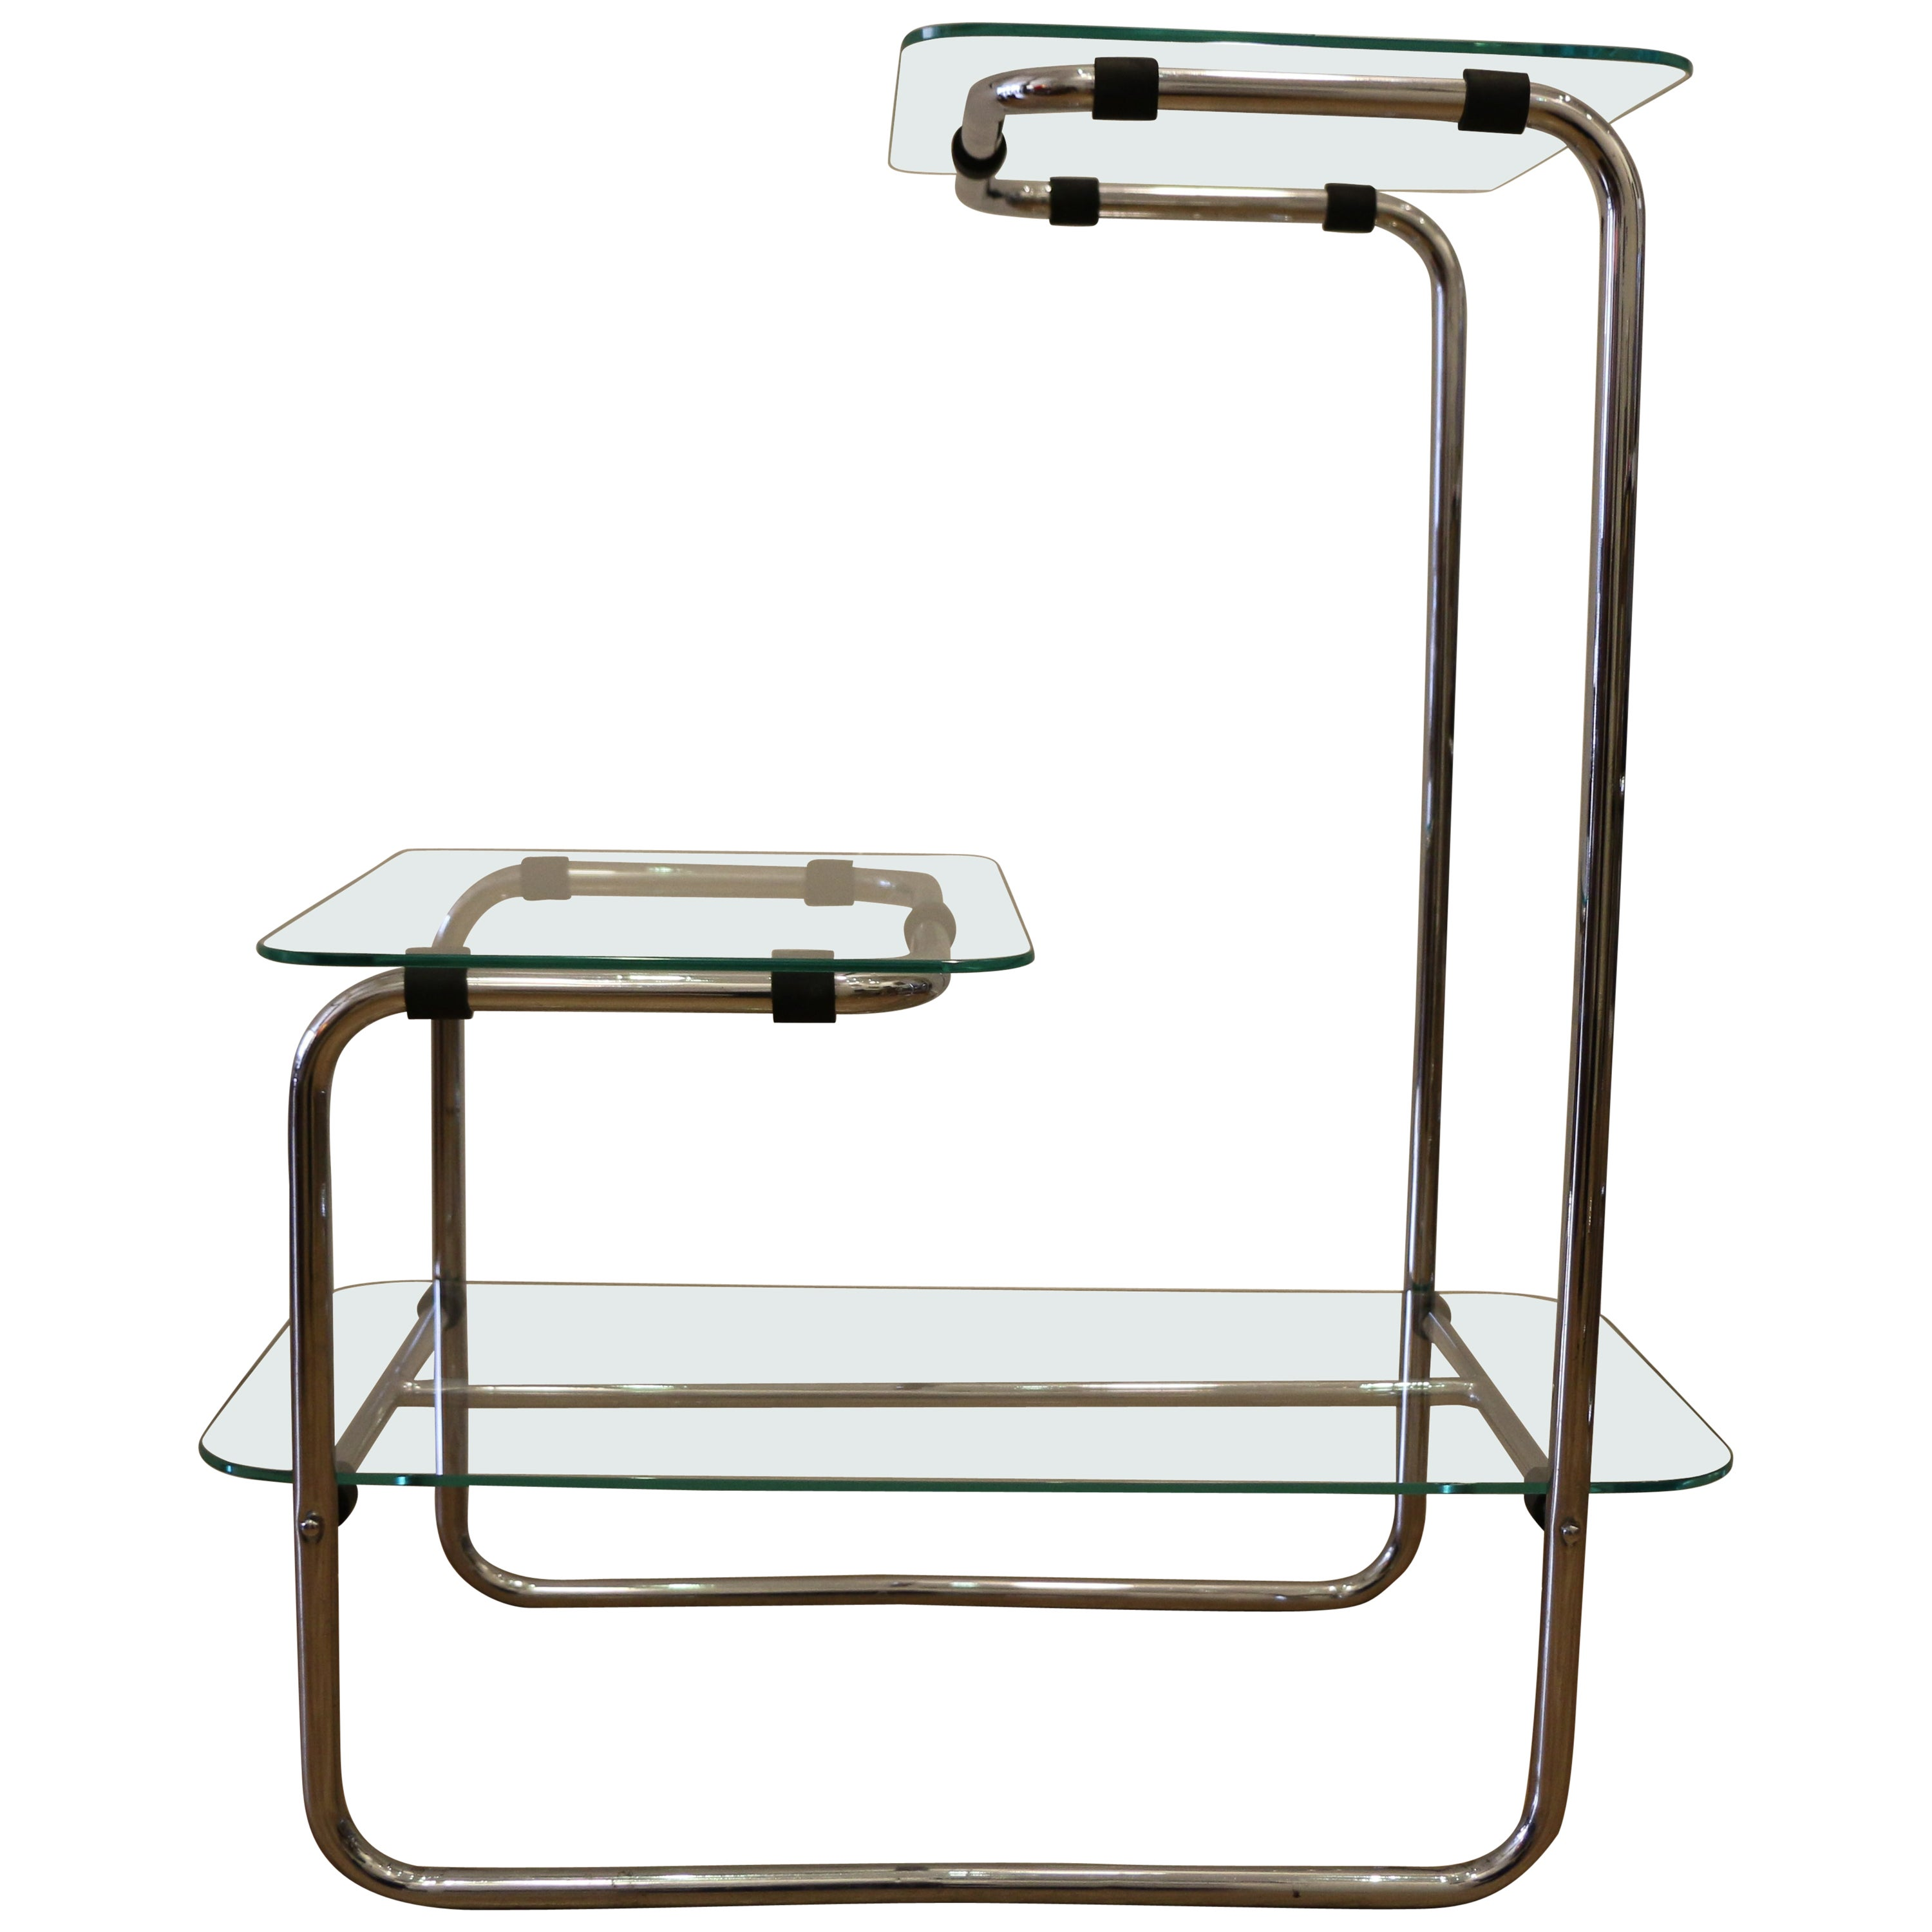 Beautiful Art Deco Shelf By Andr Groult, France, Circa 1925